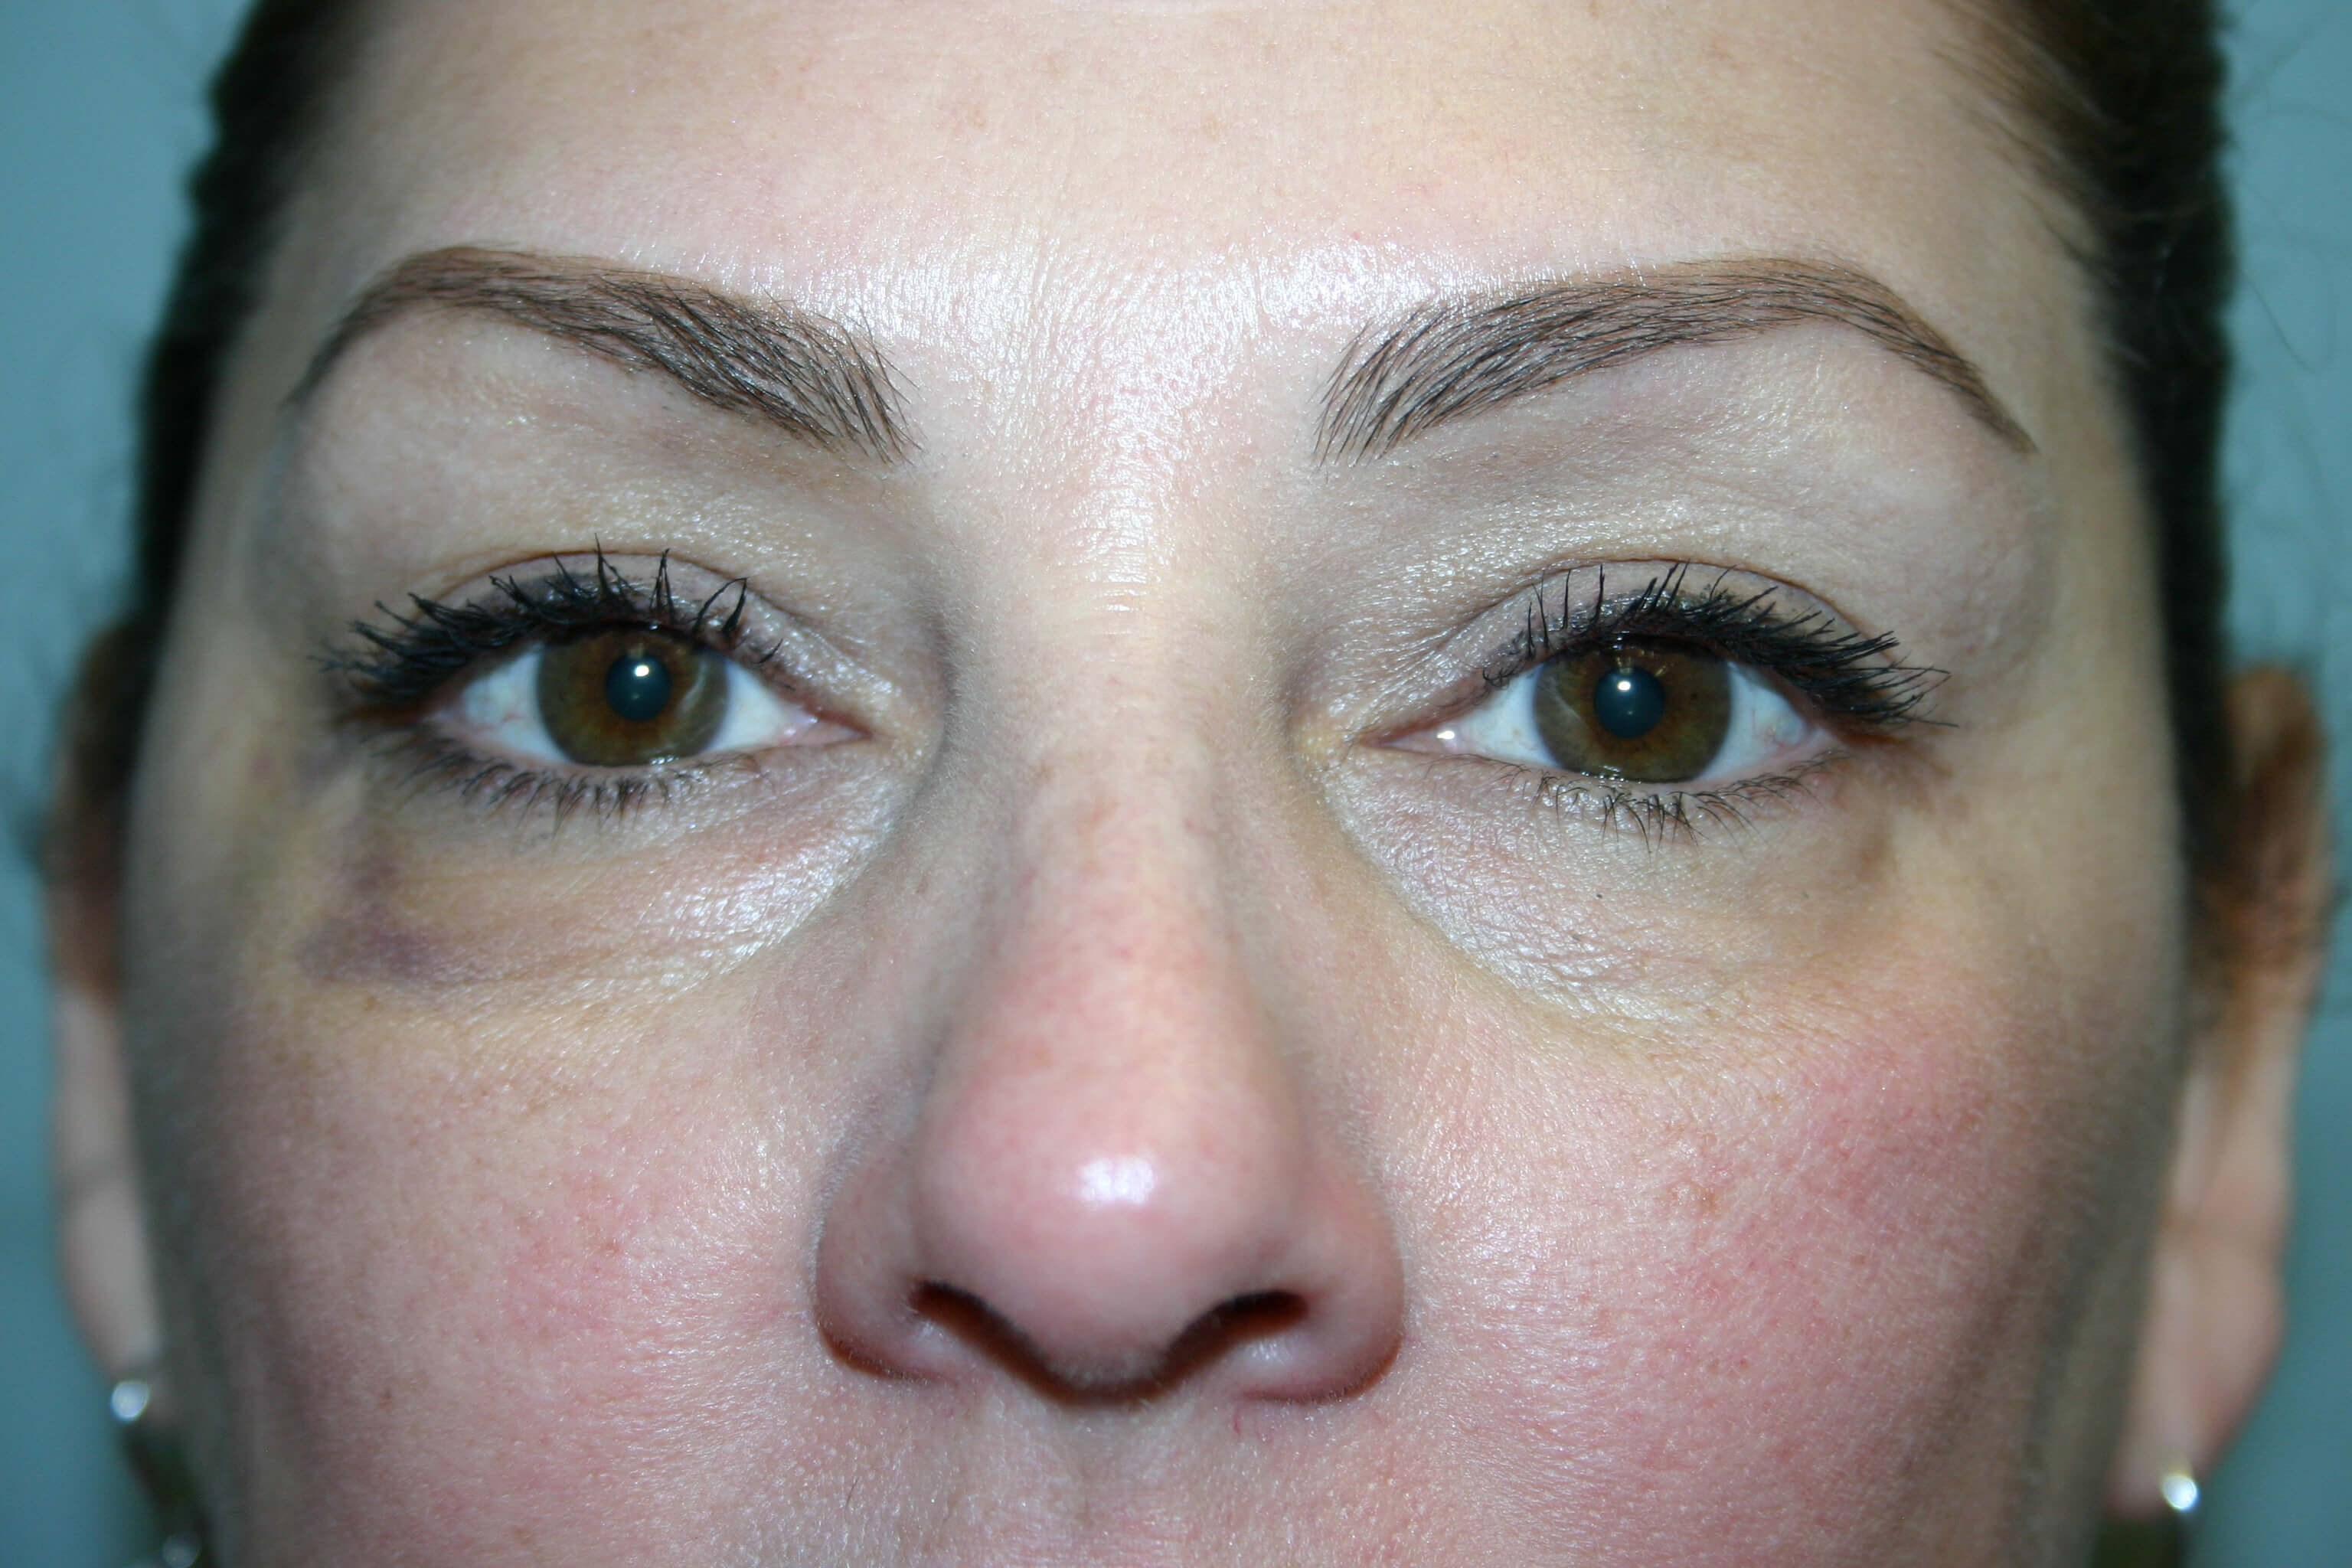 6 Month Post-op Eyelid Surgery Before